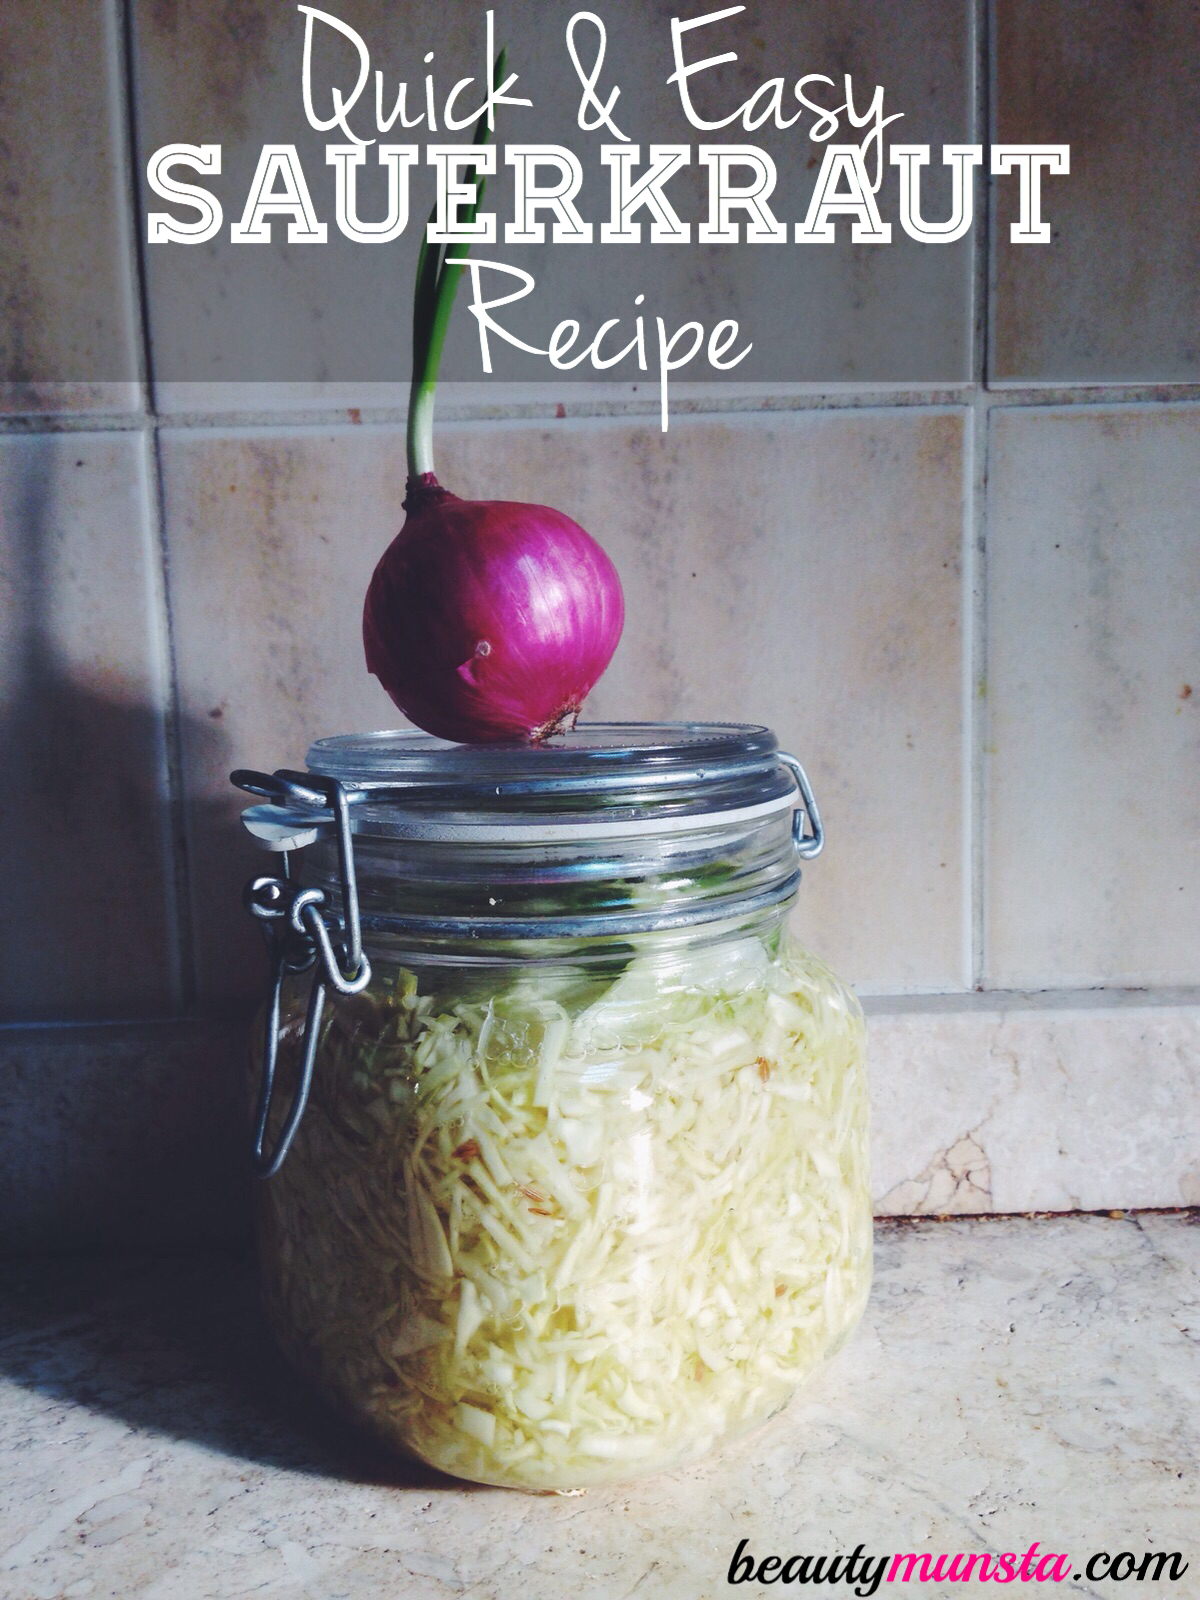 Make traditional German probiotic-rich sauerkraut in a mason jar at home with this quick and simple recipe!